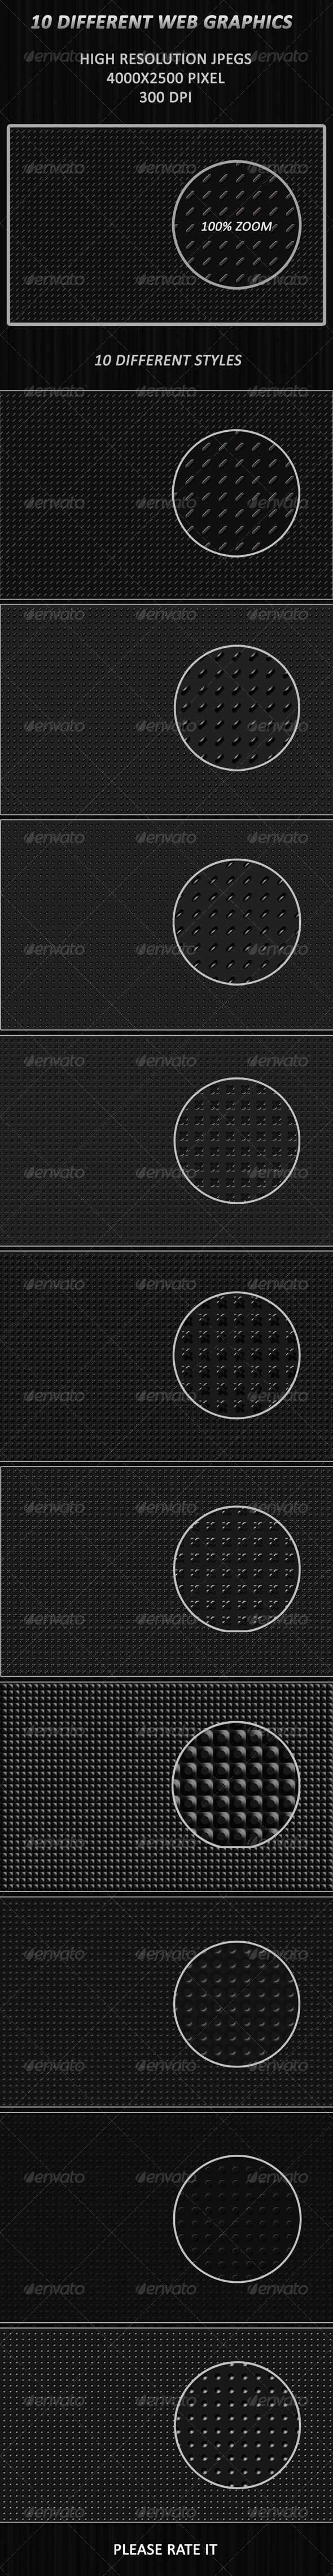 10 Different Web Graphics - Patterns Backgrounds